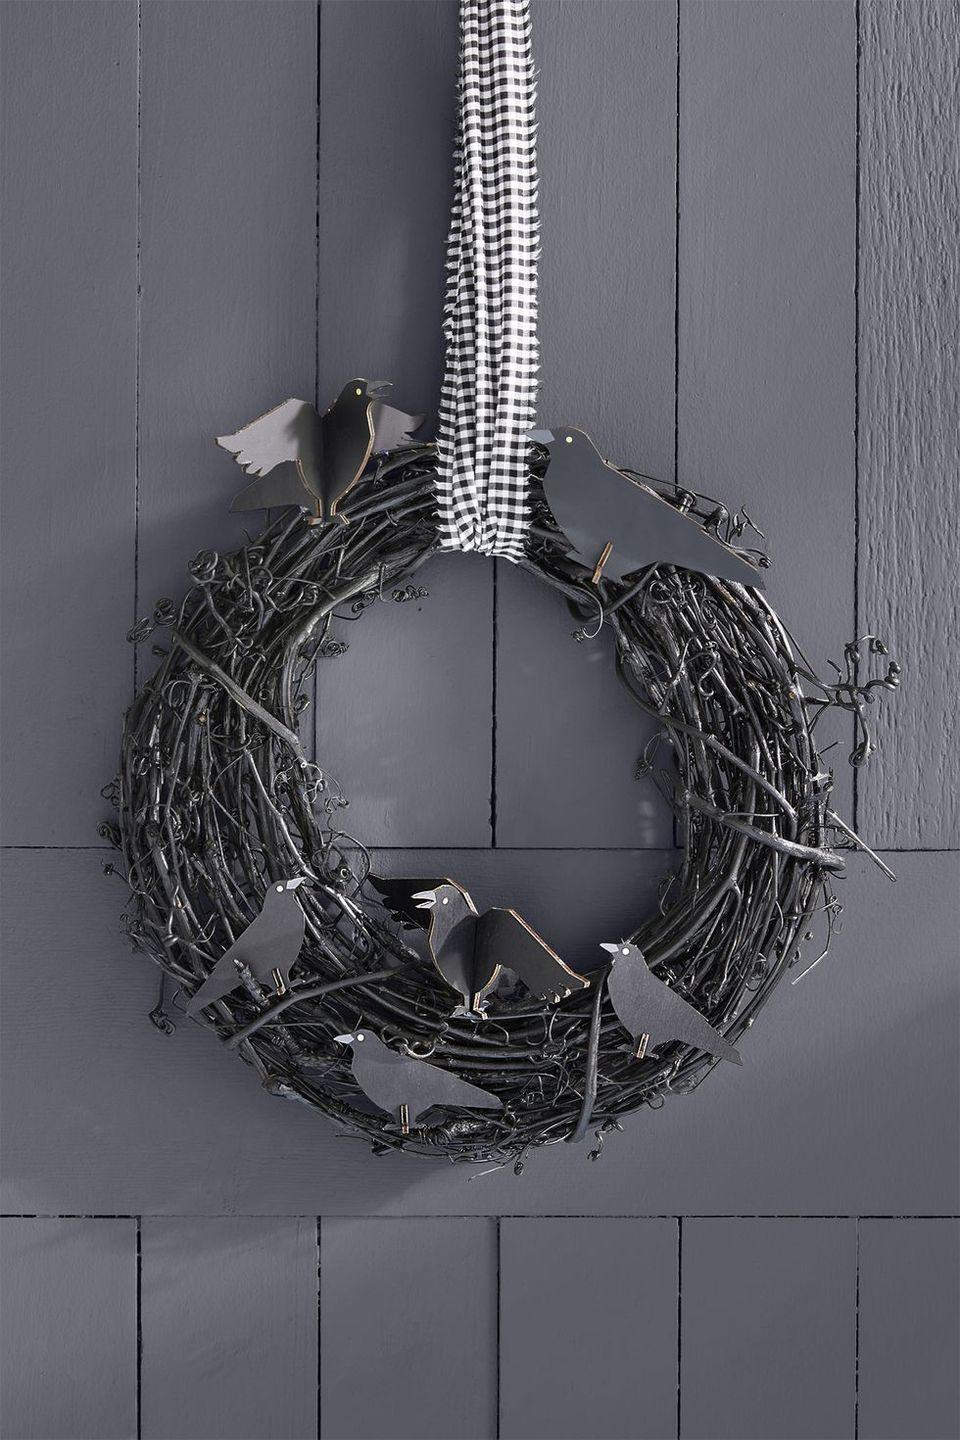 """<p>Make a subtle — but solemn — statement with this all-black wreath. Attach it to your door with a gingham or checkered ribbon for extra pizzazz. </p><p><a class=""""link rapid-noclick-resp"""" href=""""https://www.amazon.com/Darice-GPV10-Grapevine-Wreath-10-Inch/dp/B0054G5PXM/?tag=syn-yahoo-20&ascsubtag=%5Bartid%7C10055.g.421%5Bsrc%7Cyahoo-us"""" rel=""""nofollow noopener"""" target=""""_blank"""" data-ylk=""""slk:SHOP GRAPEVINE WREATHS"""">SHOP GRAPEVINE WREATHS</a> </p>"""